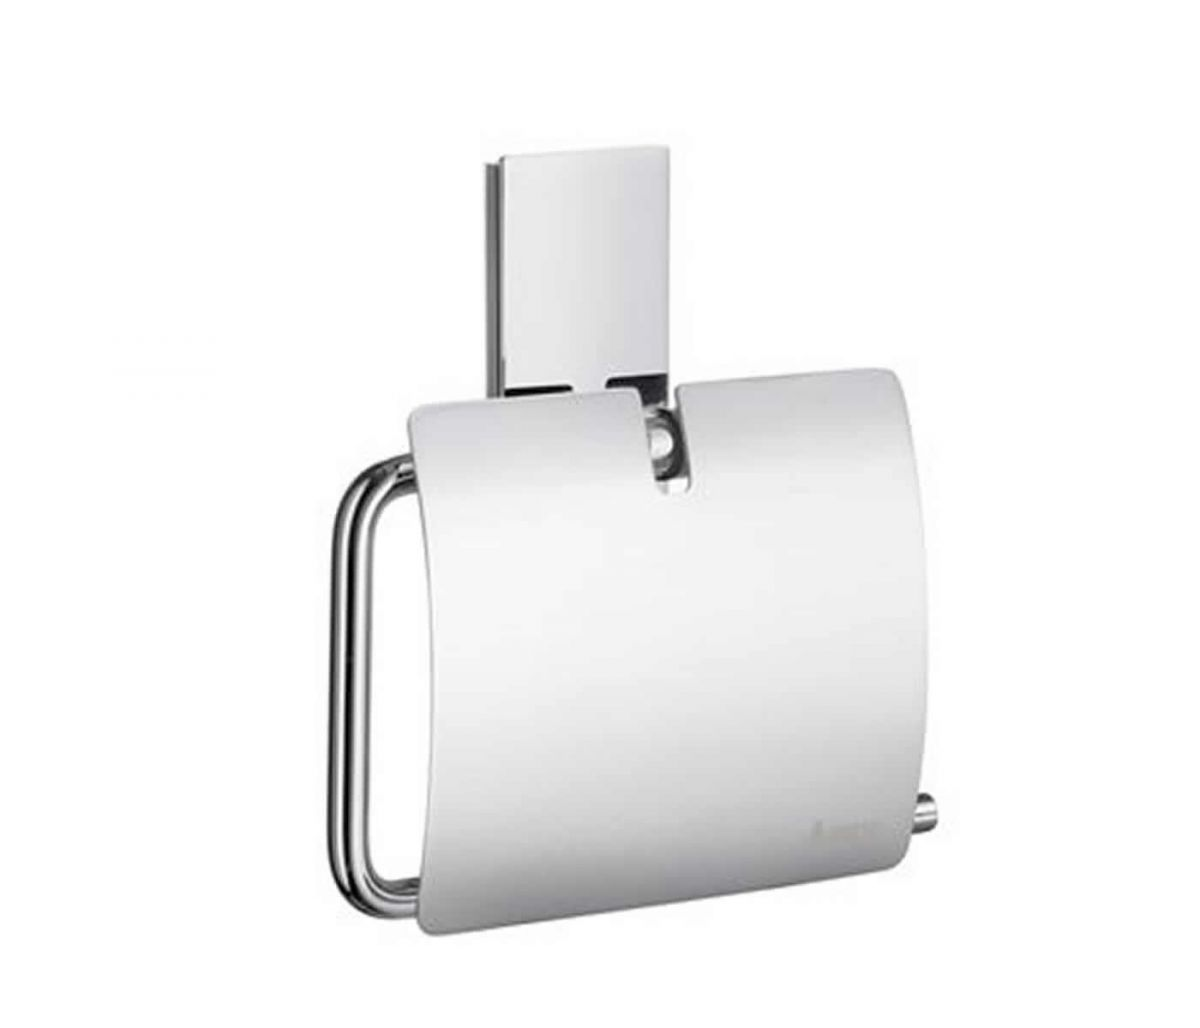 Smedbo pool toilet roll holder with lid zk3414 uk bathrooms for Bathroom accessories toilet roll holder